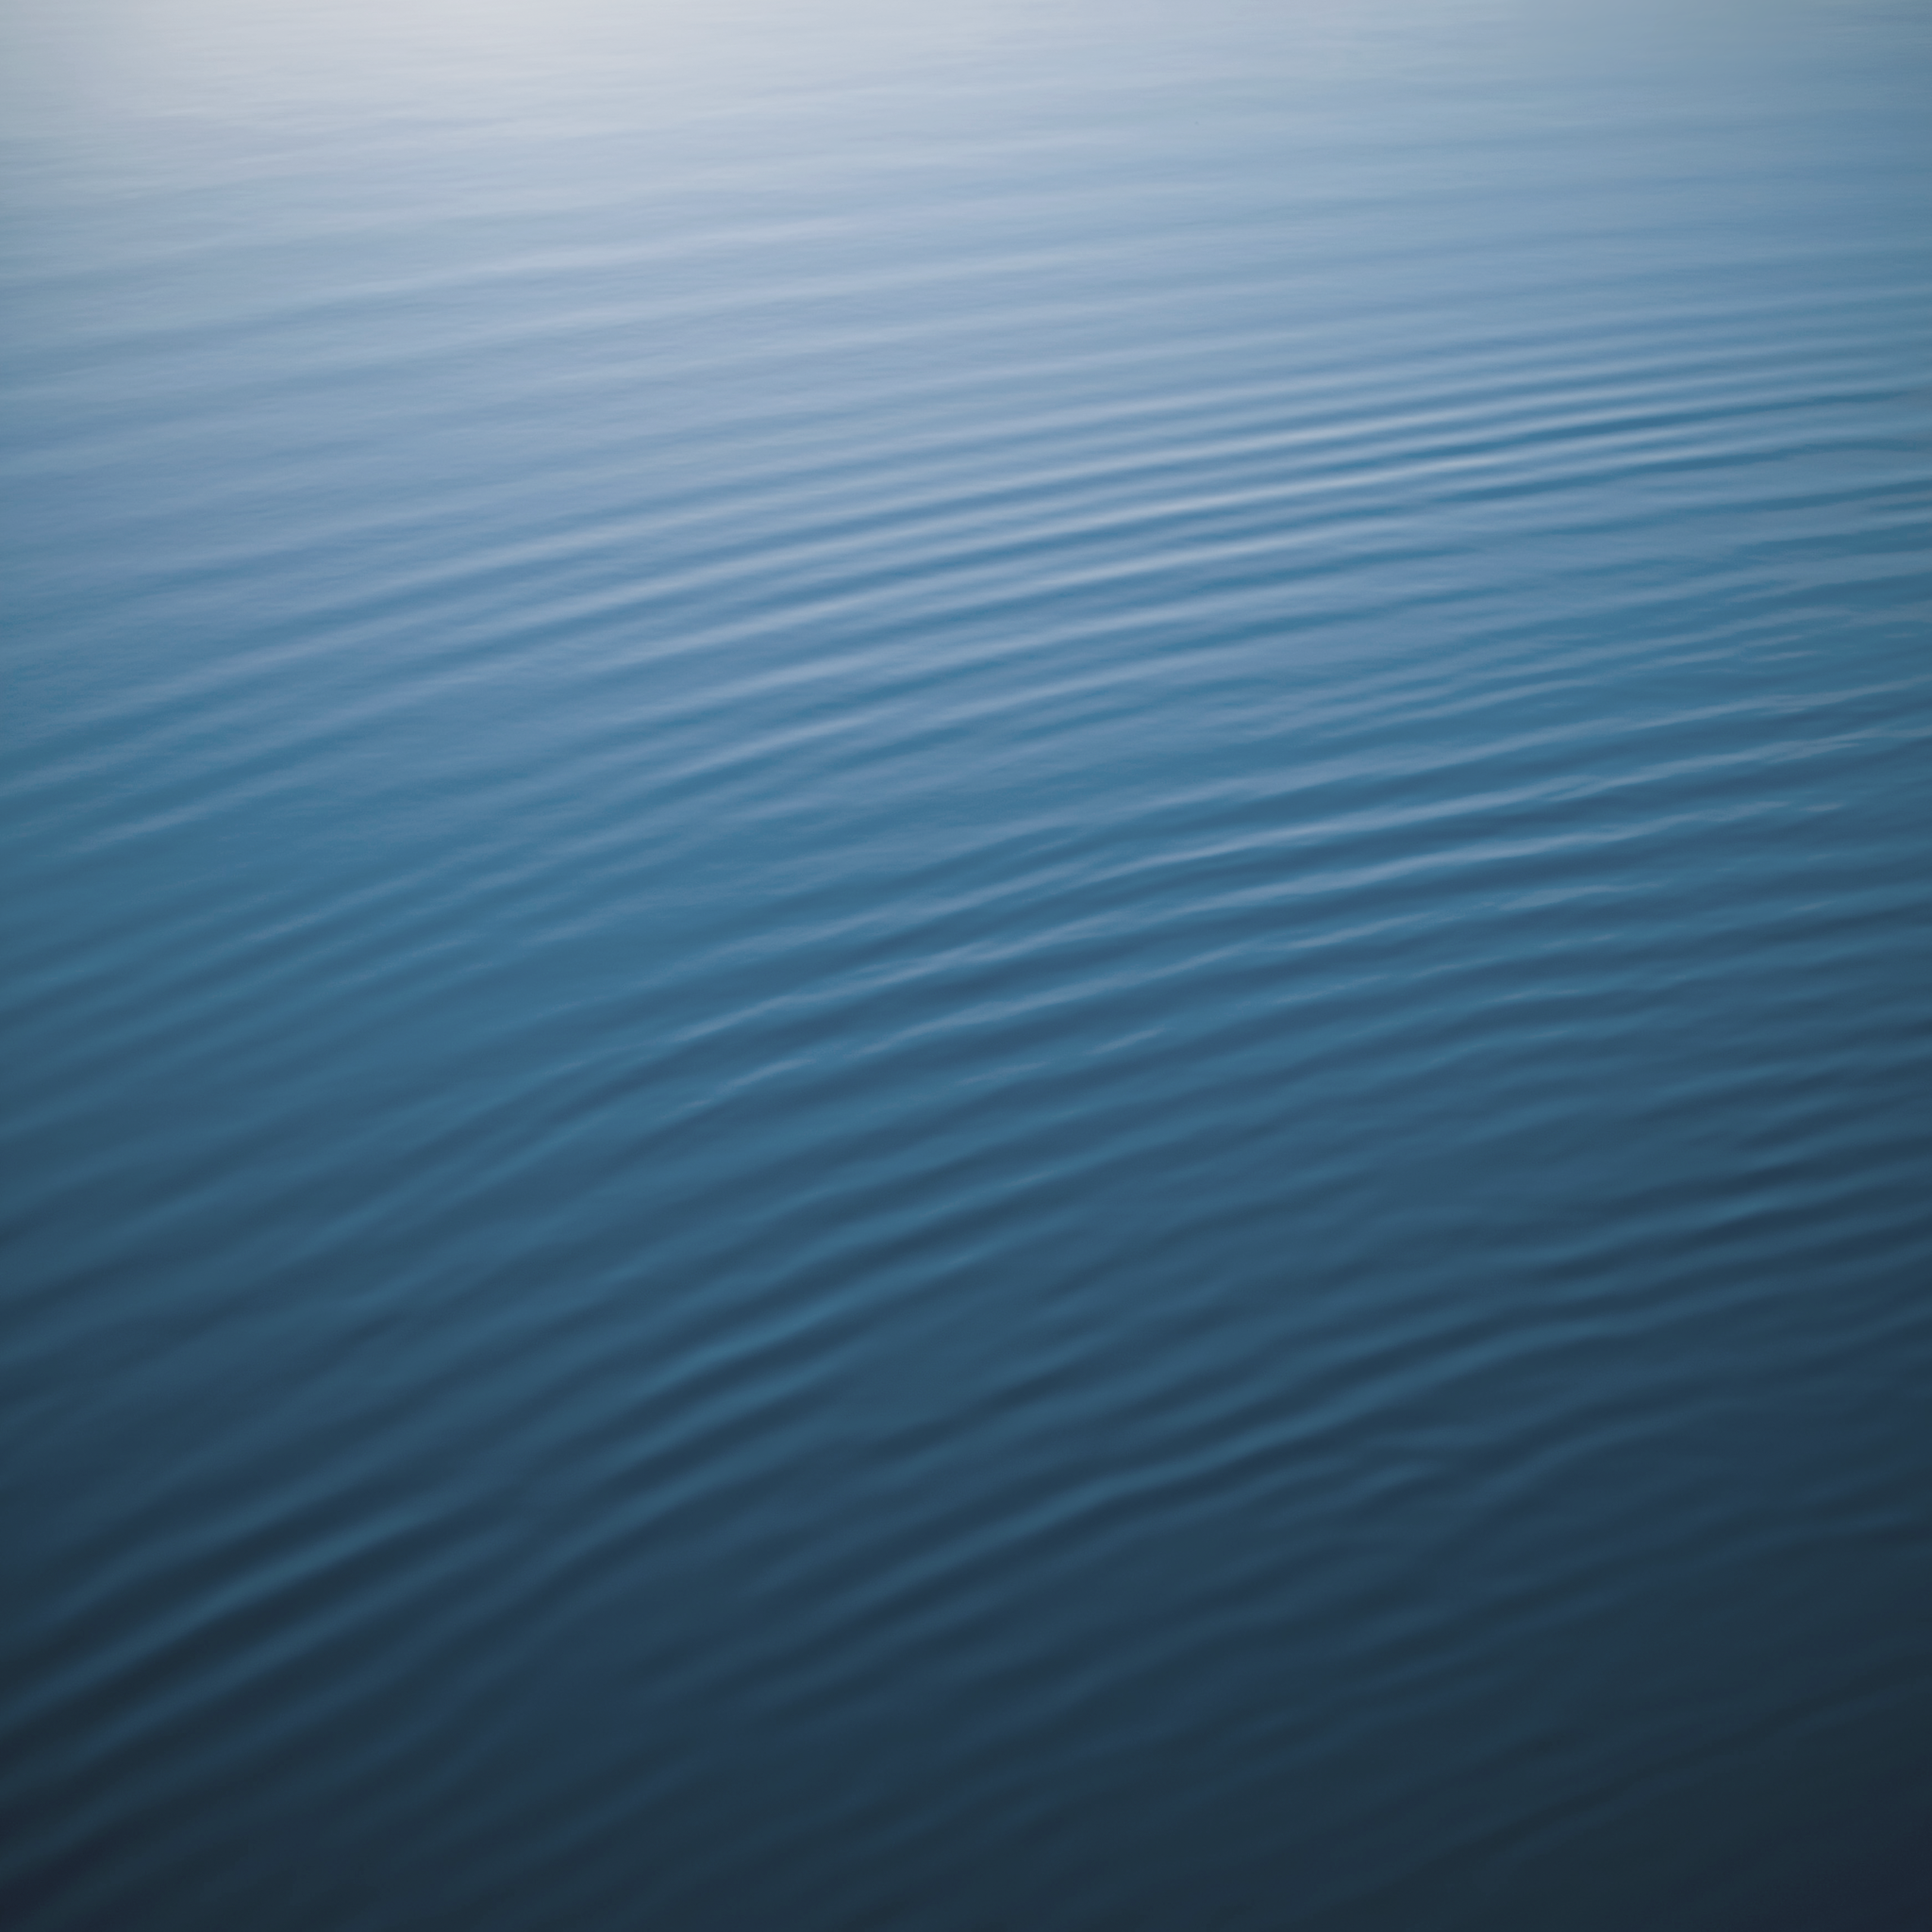 Ios 6 Get The New Ios 6 Default Wallpaper Now Rippled Water Ipad Wallpaper Iphone 6s Wallpaper Ios Wallpapers